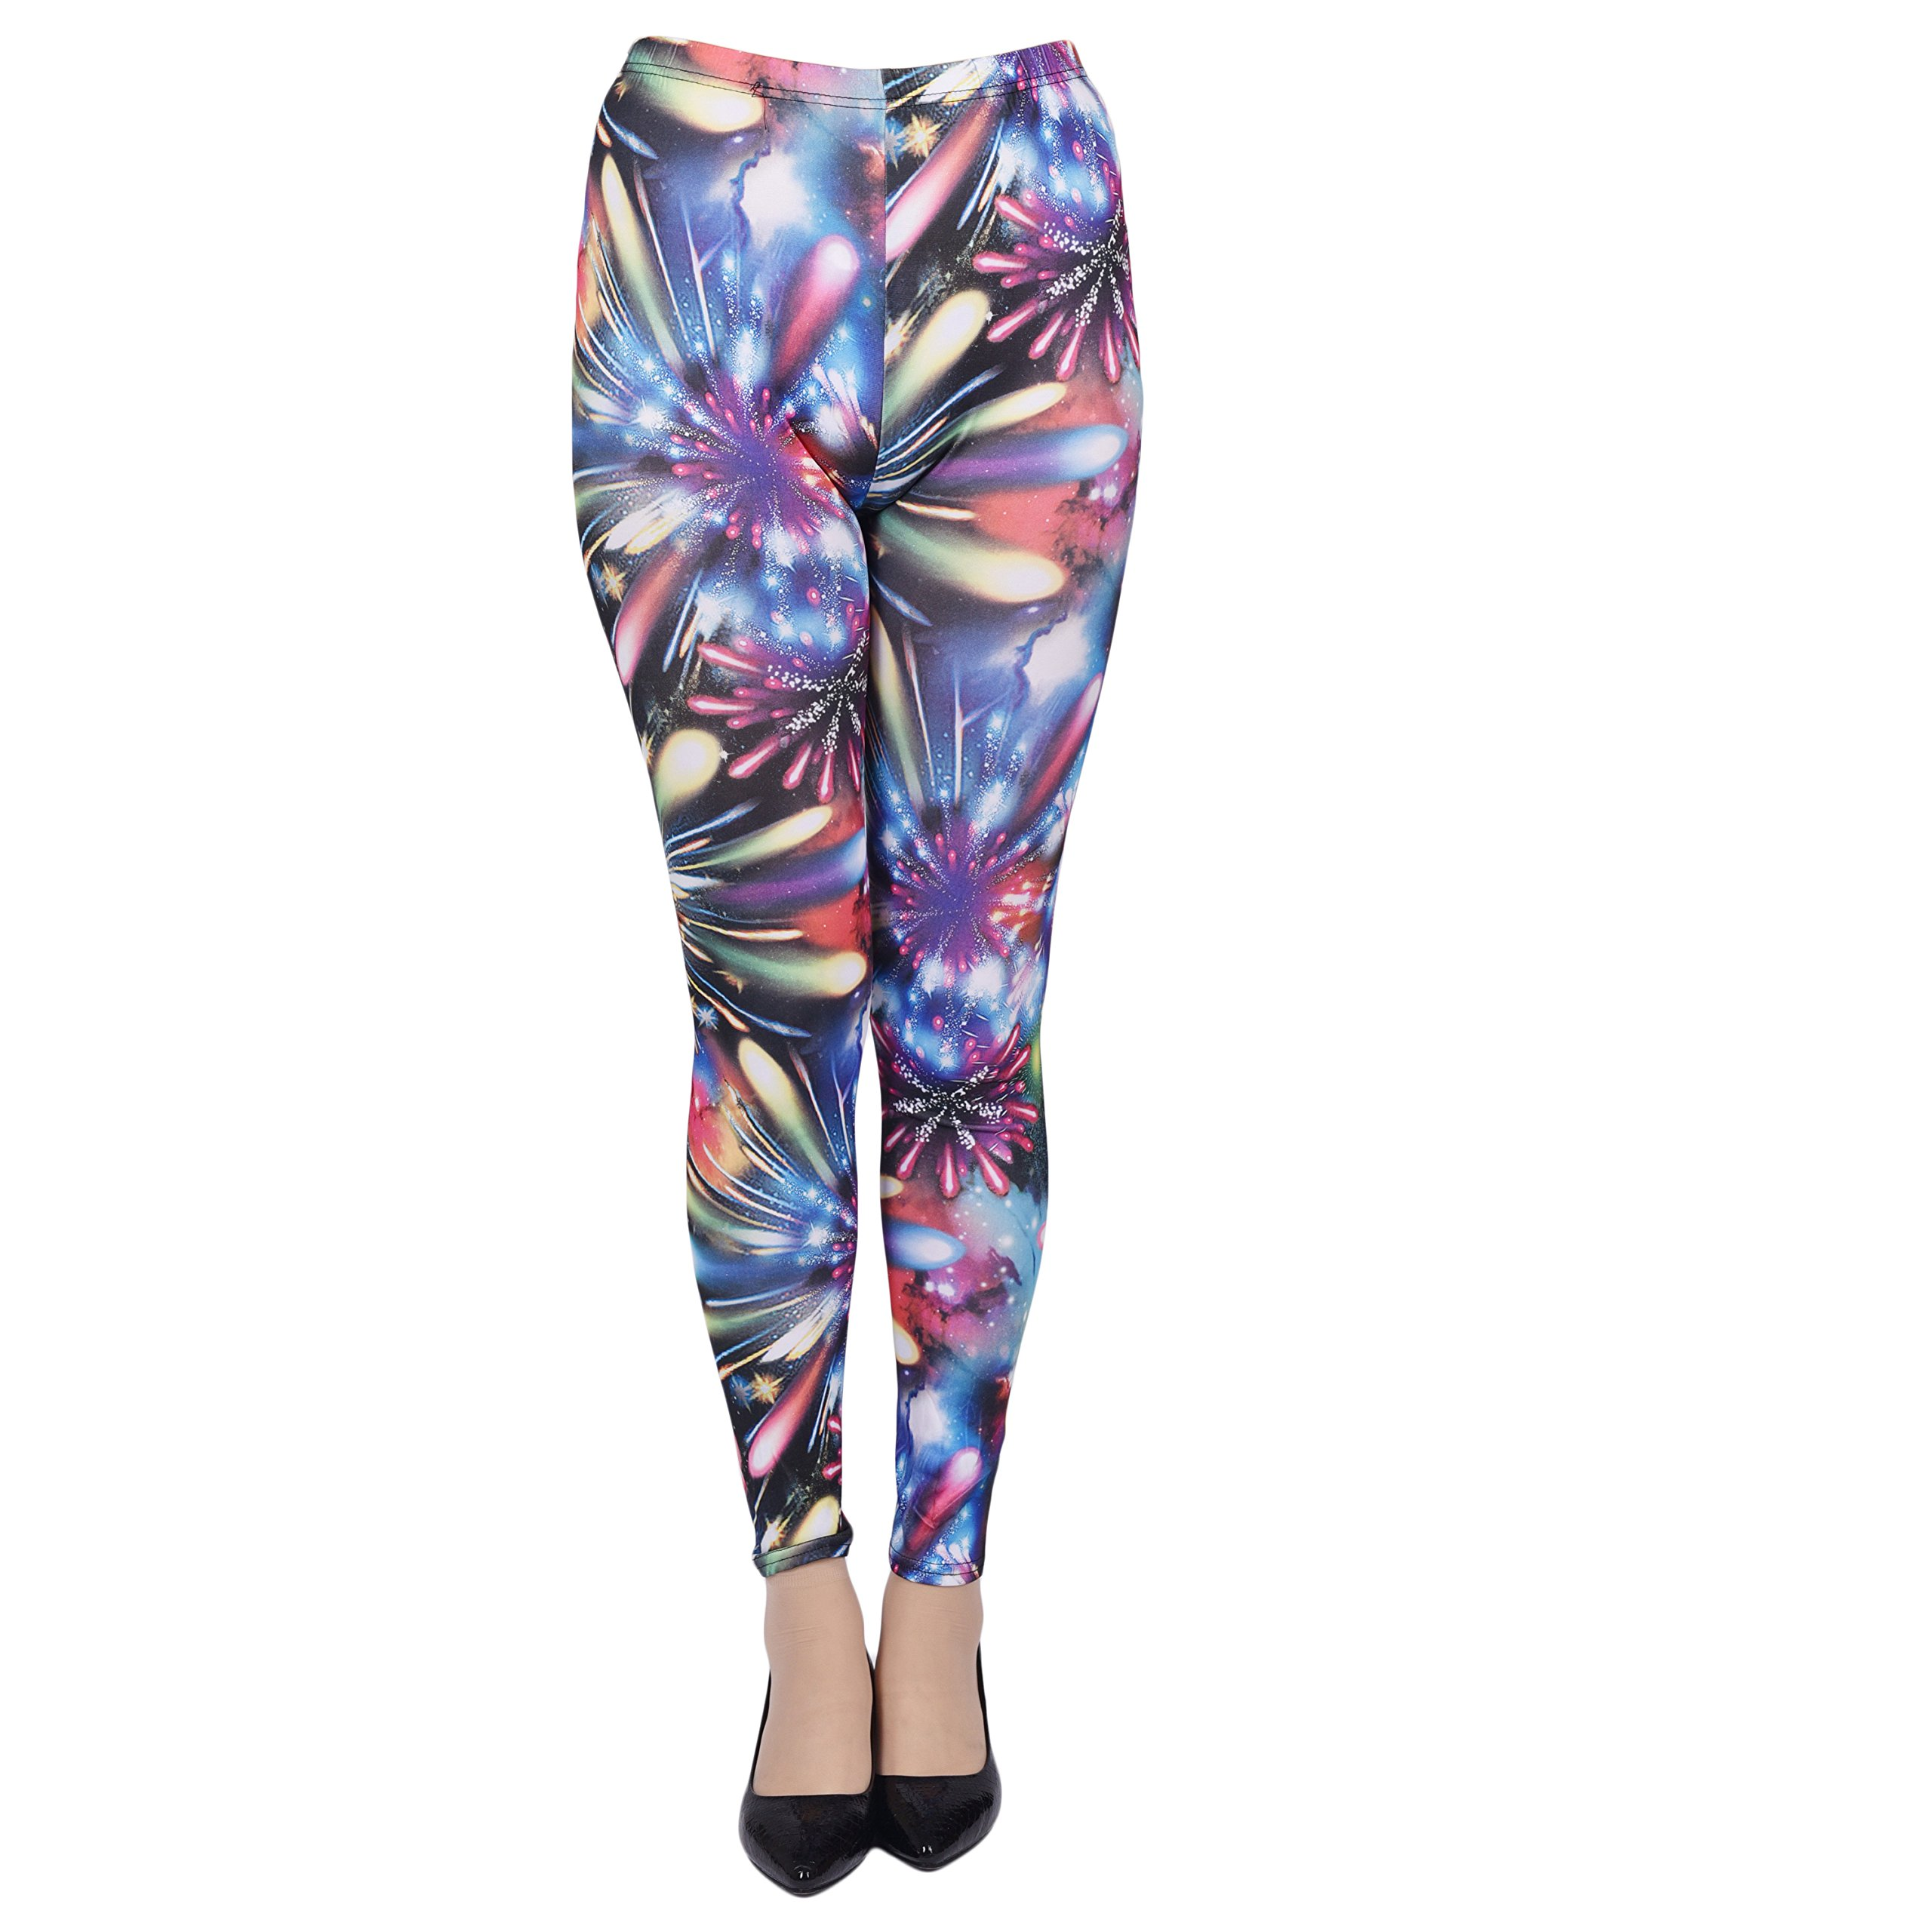 Woogwin Womens Printed Leggings Autumn Winter Skinny Stretchy Tights Pants (universe black blue)